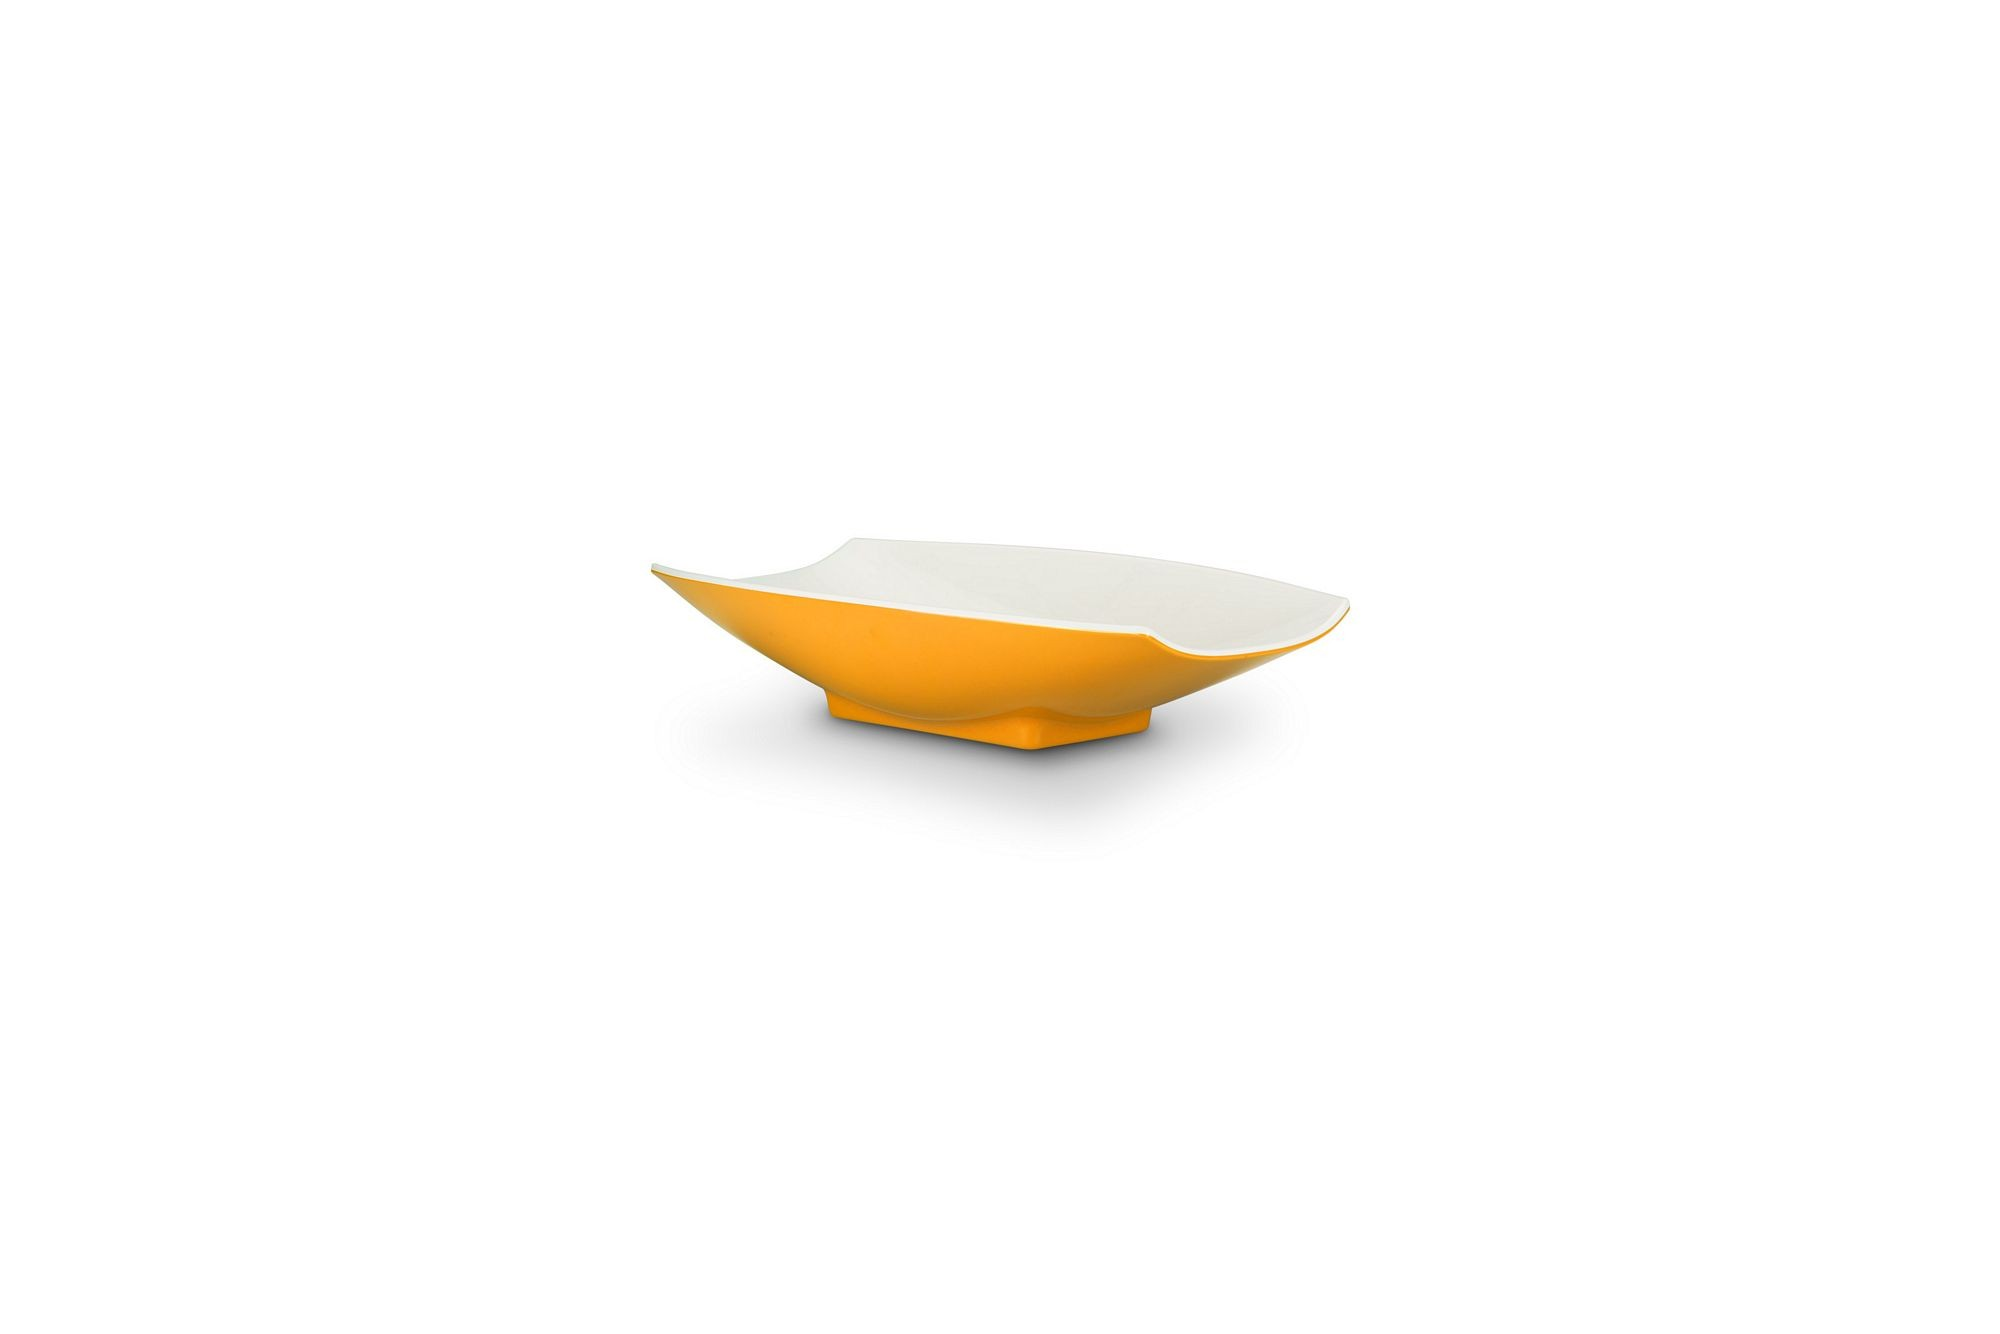 Bon Chef 53701-2ToneYellow Melamine Curves Bowl, Yellow Outside/White Inside 8 oz.